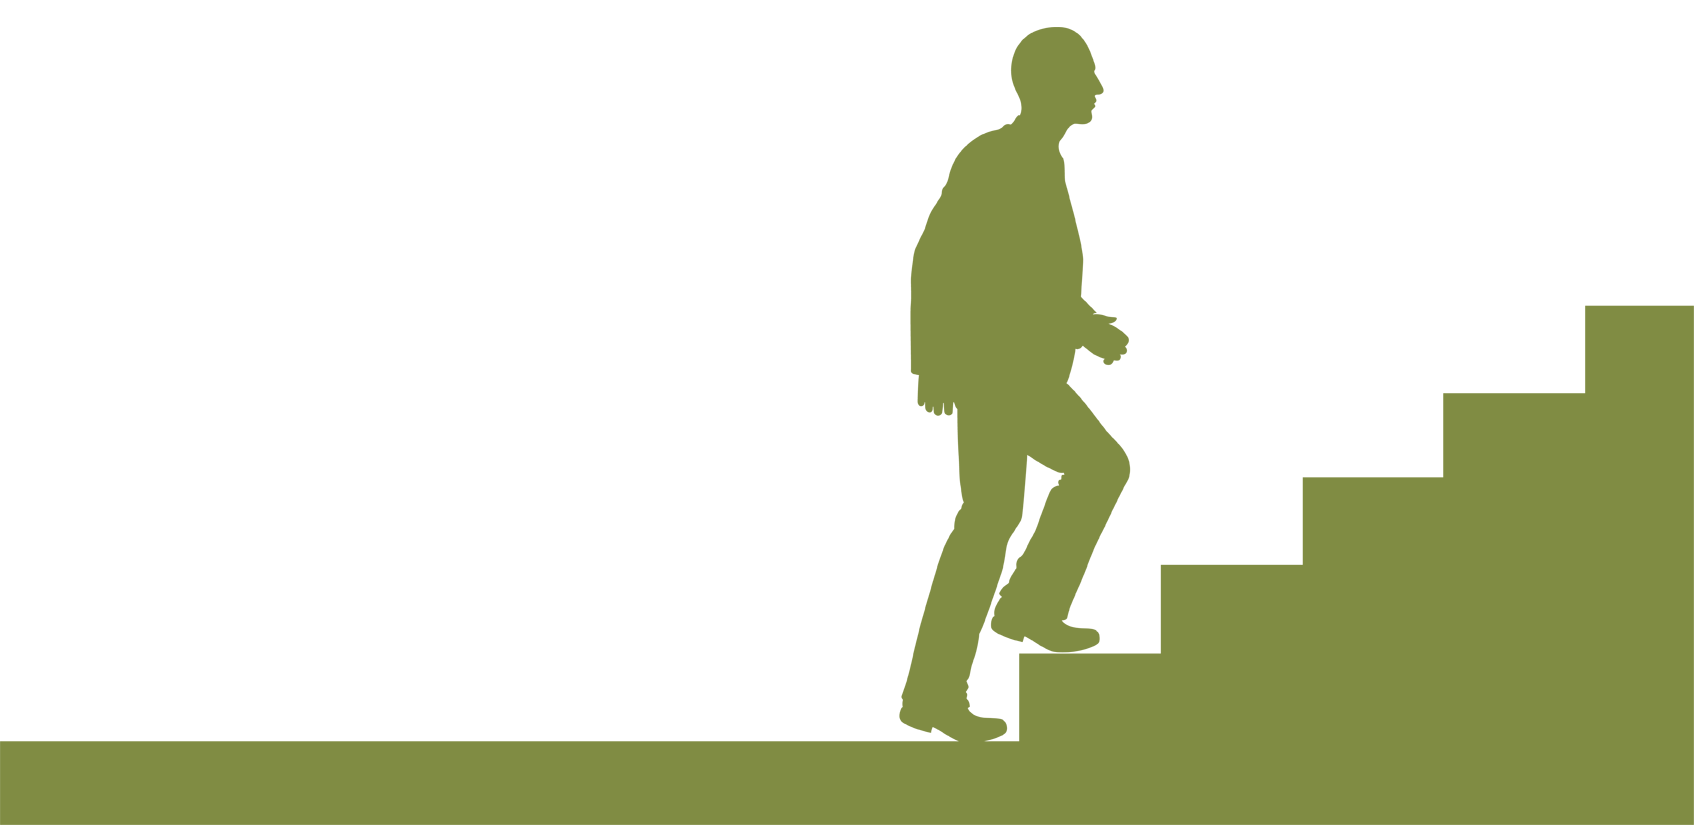 svg transparent download Walking up stairs clipart. Silhouette at getdrawings com.